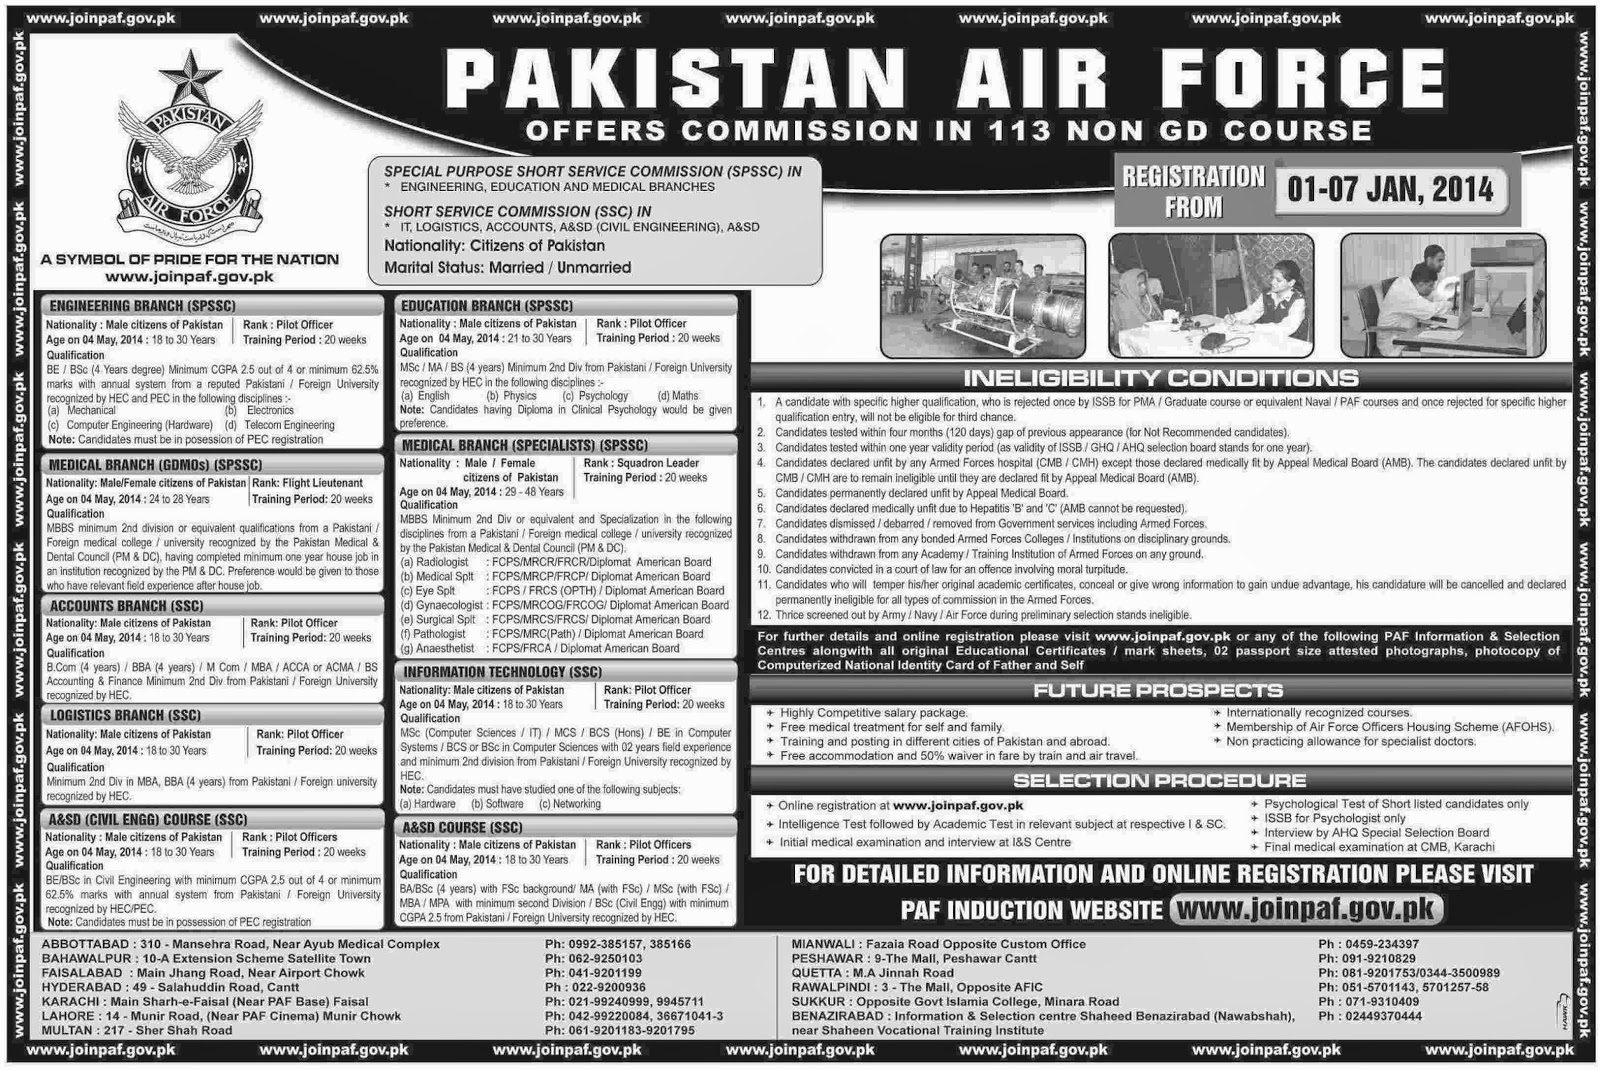 pak air force 113 non gd course officers commission 2014